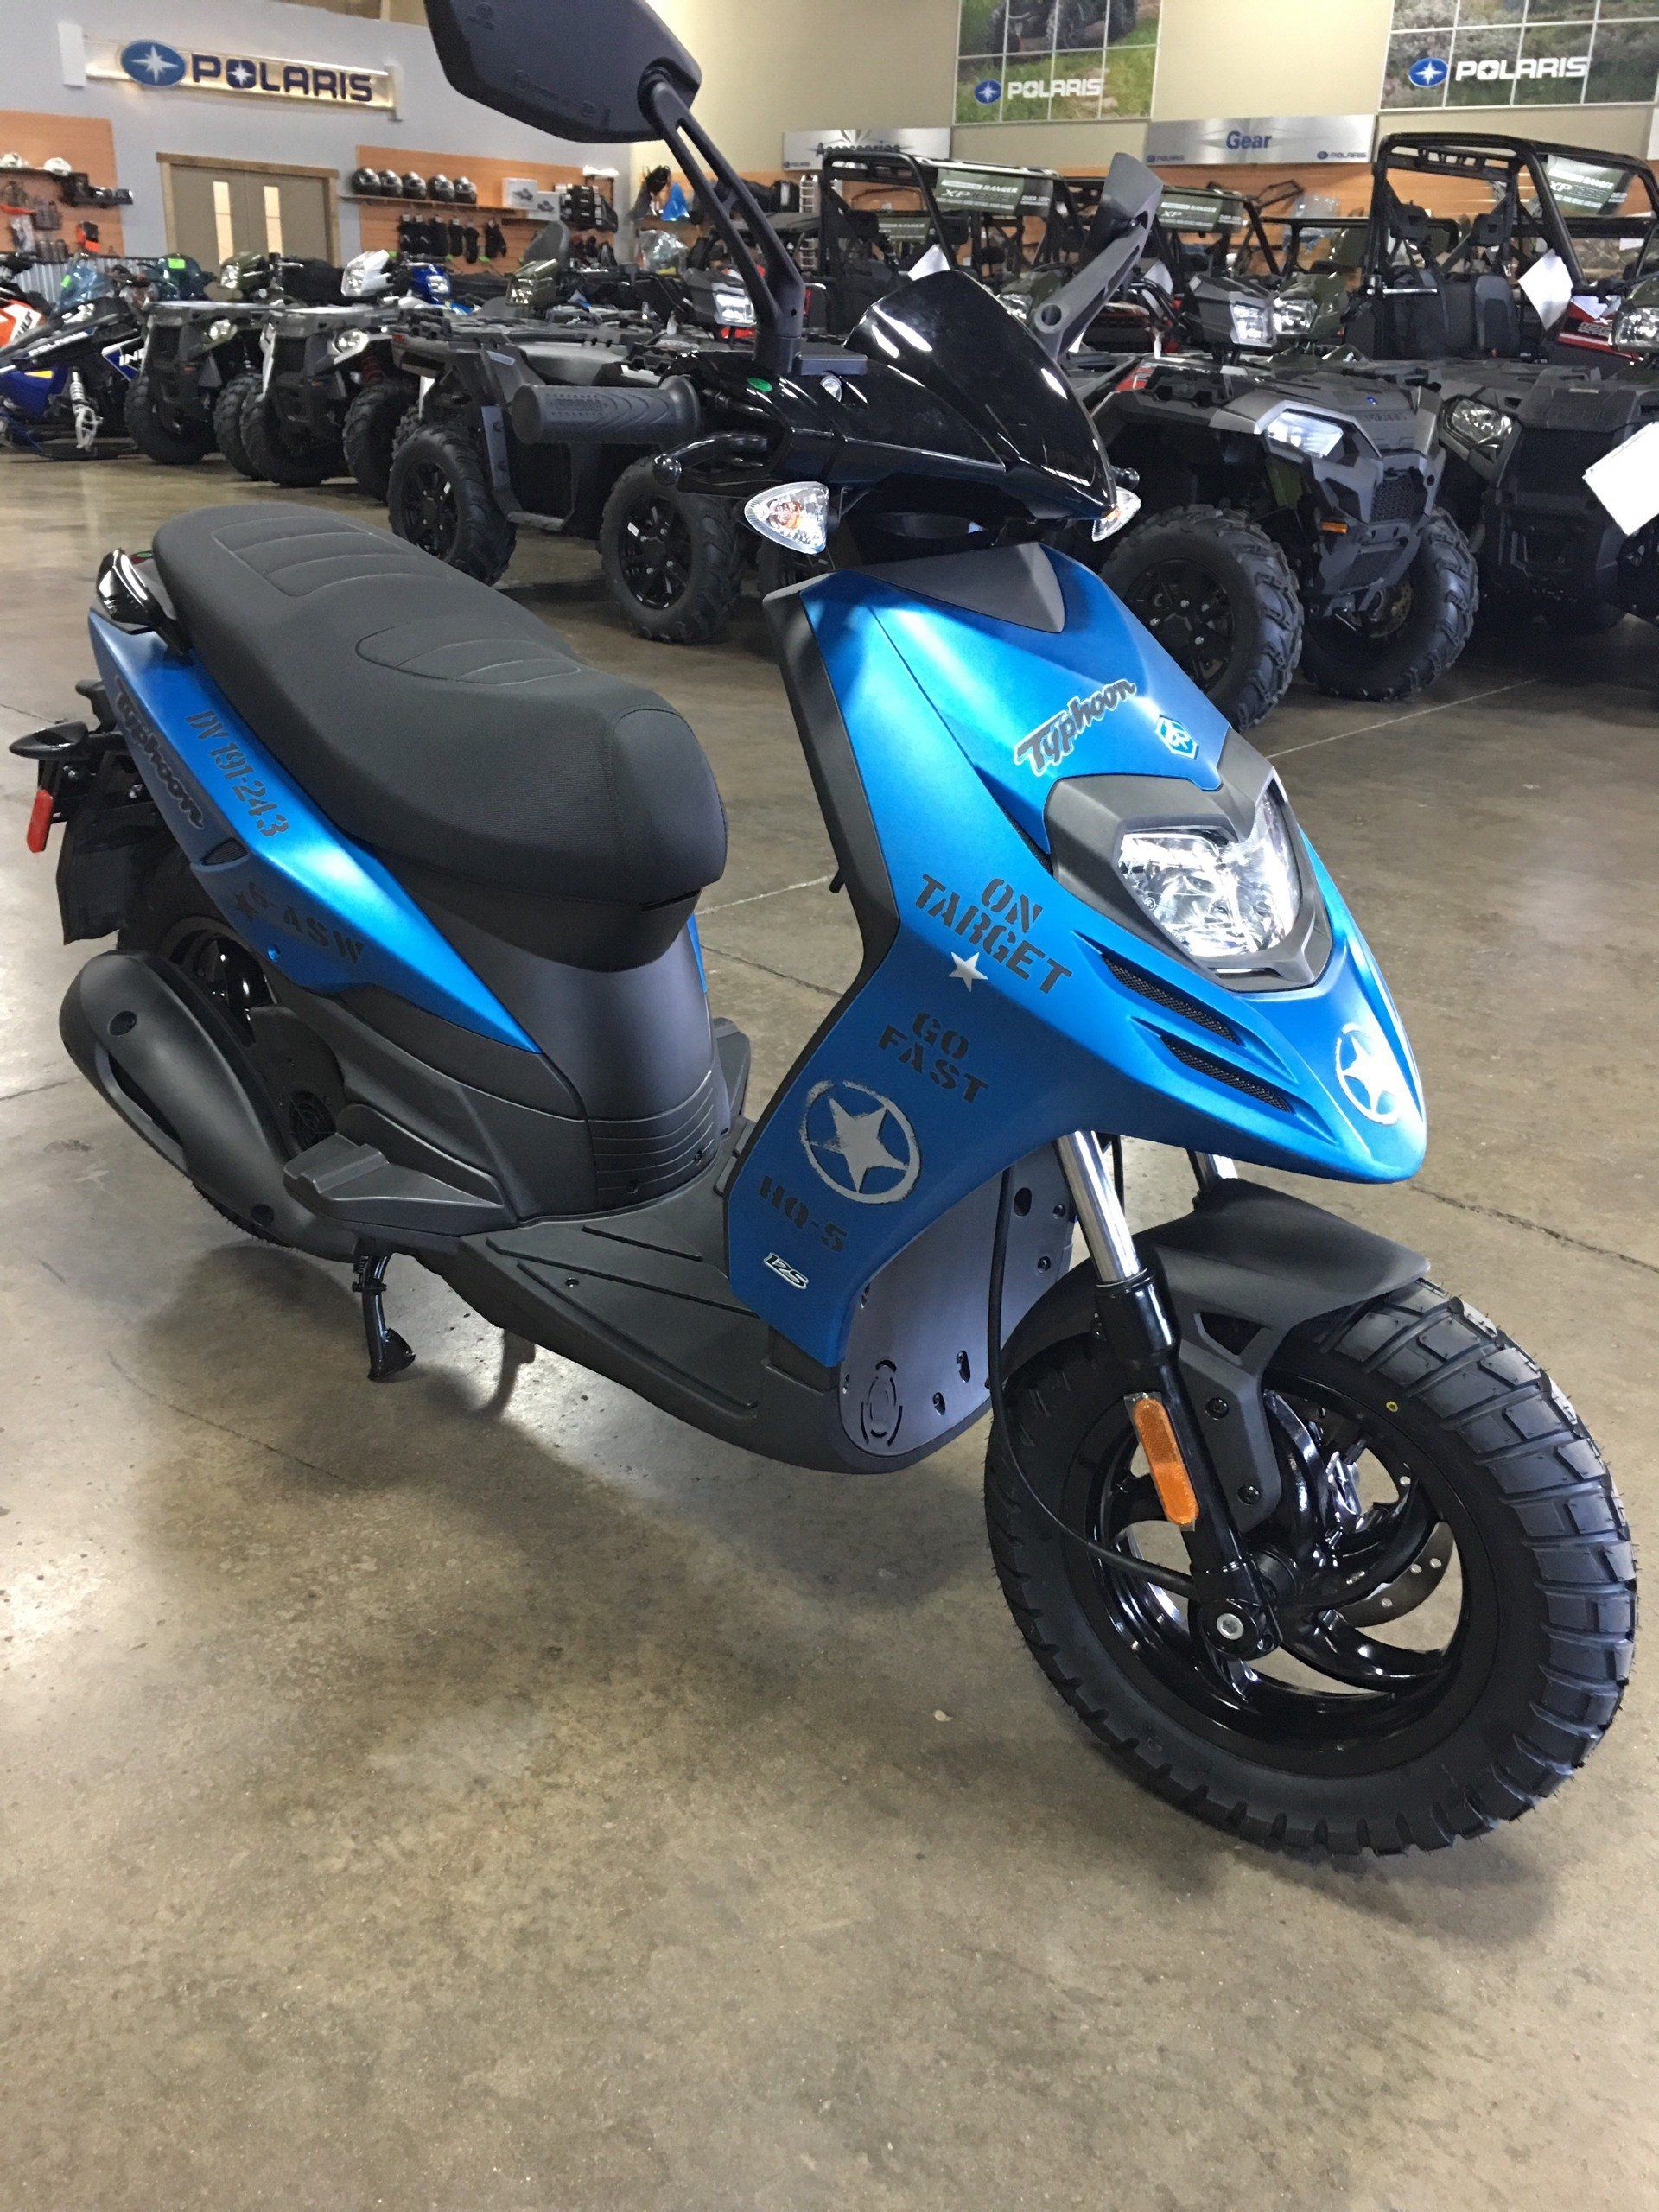 2018 Piaggio Typhoon 125 in Woodstock, Illinois